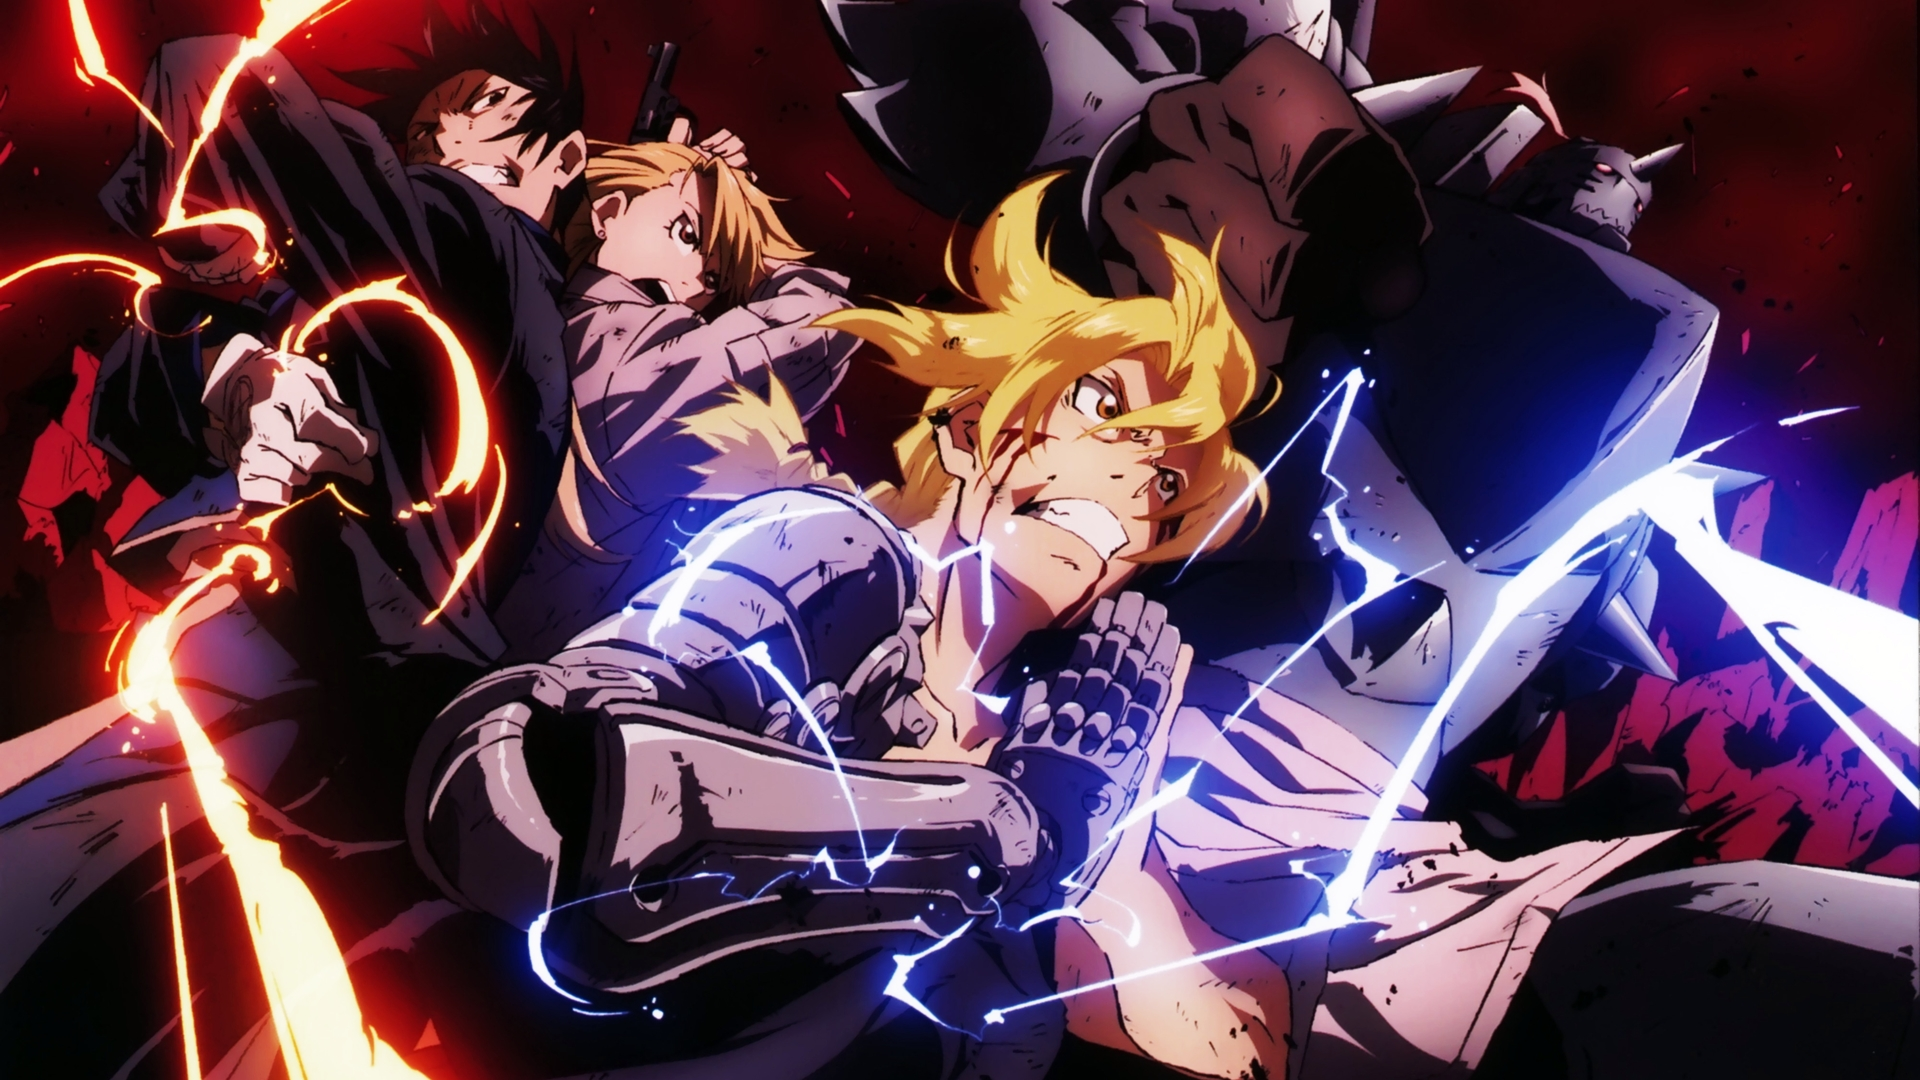 fullmetal alchemist wallpaper phone